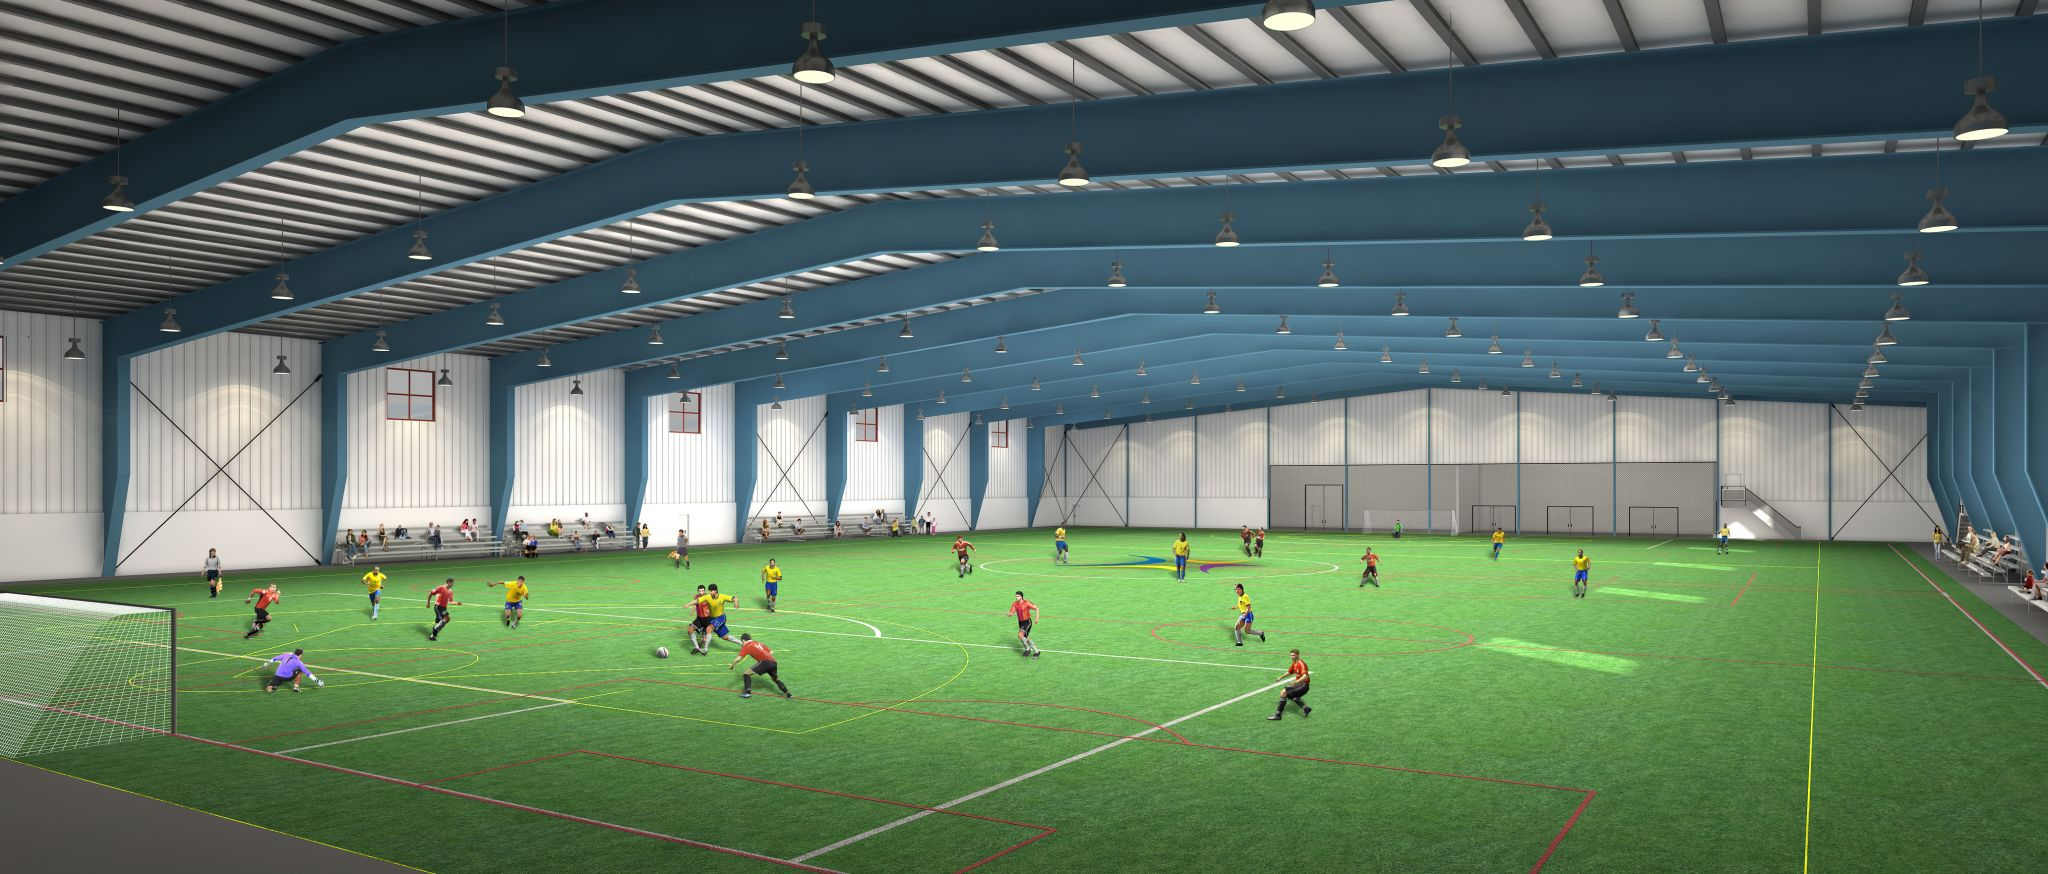 This rendering shows the interior of the Oshawa's Civic Complex and Fieldhouse indoor soccer facilities.